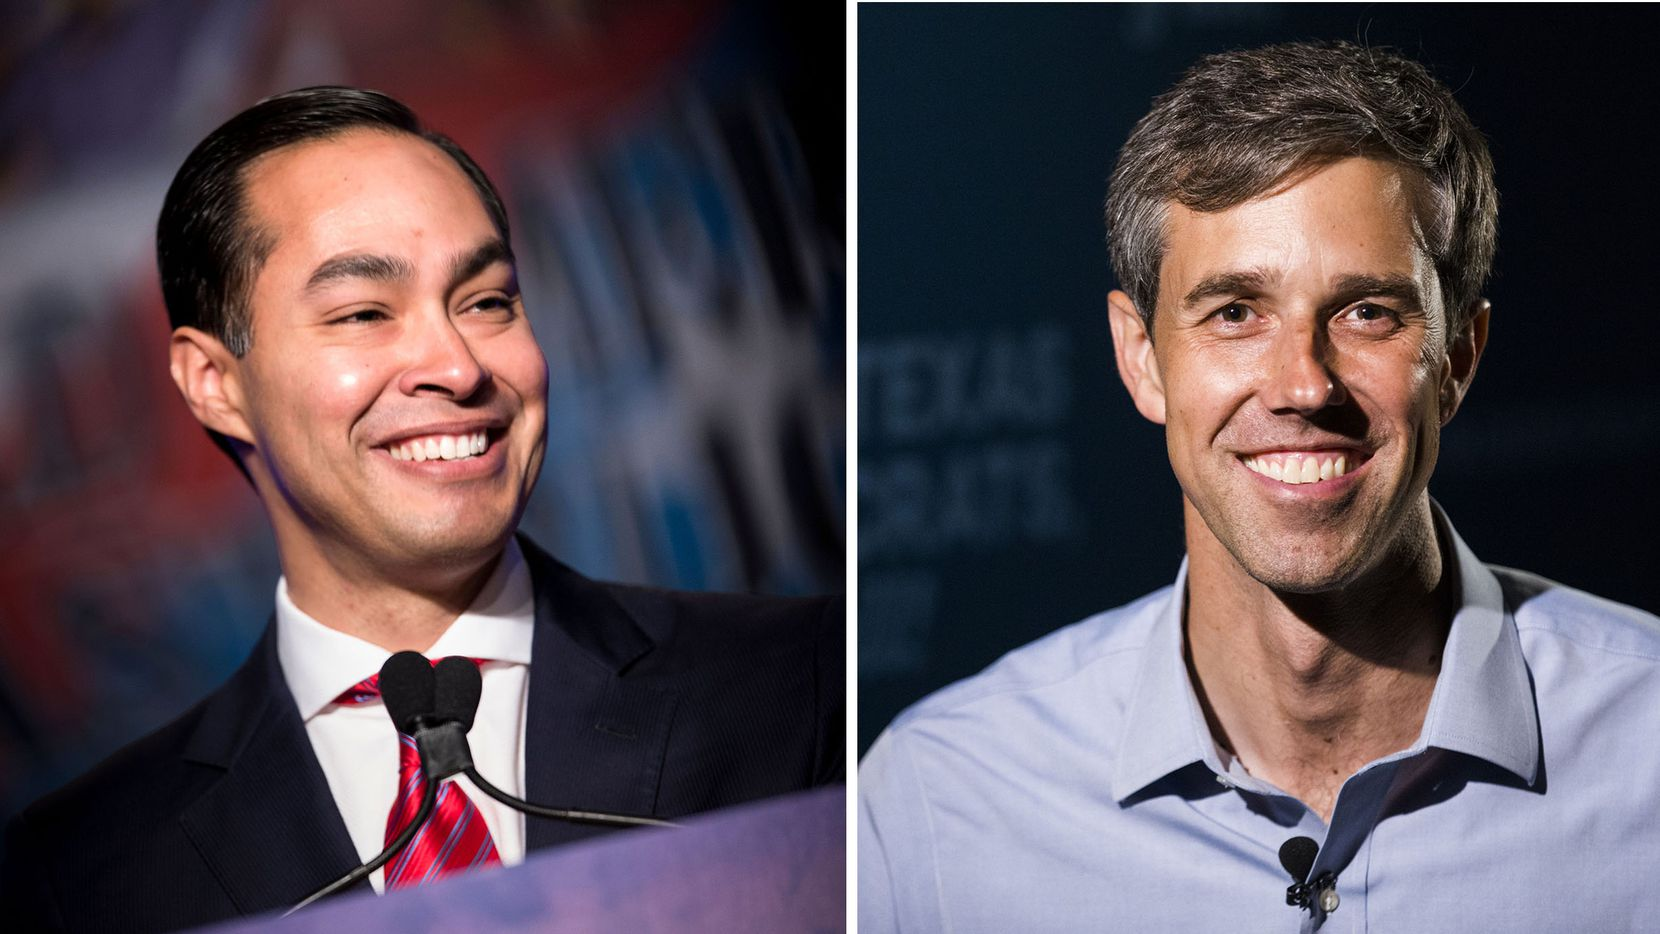 Julian Castro (left) and Beto O'Rourke